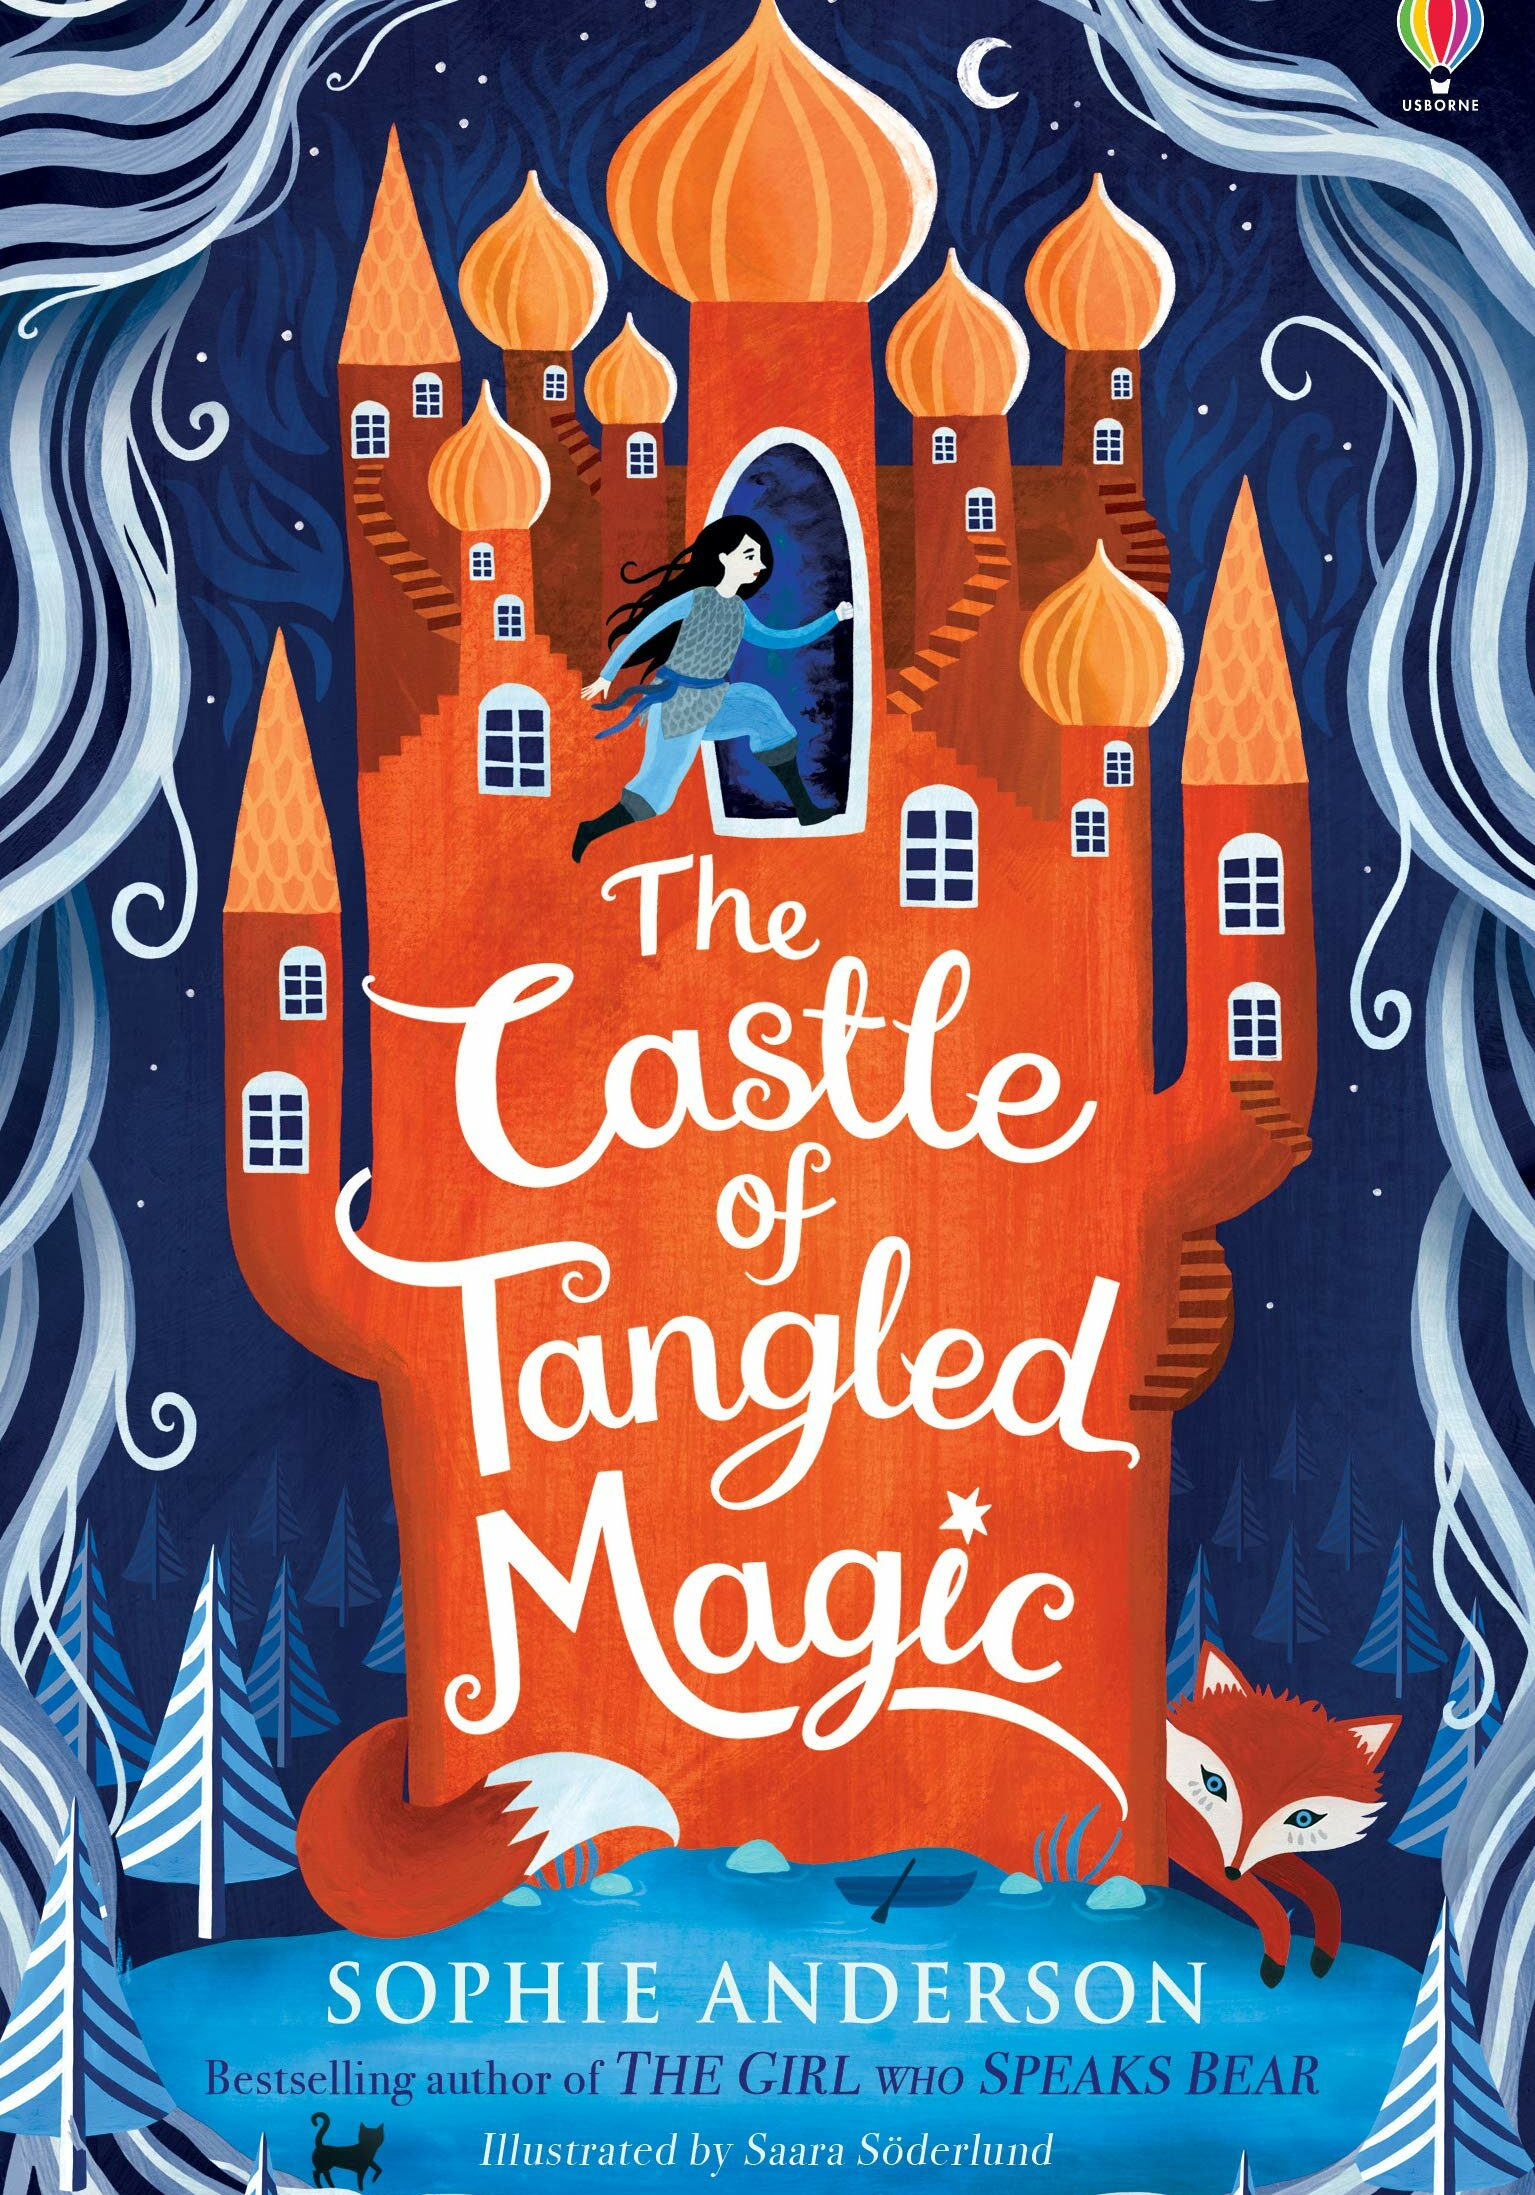 The castle of tangled magic book